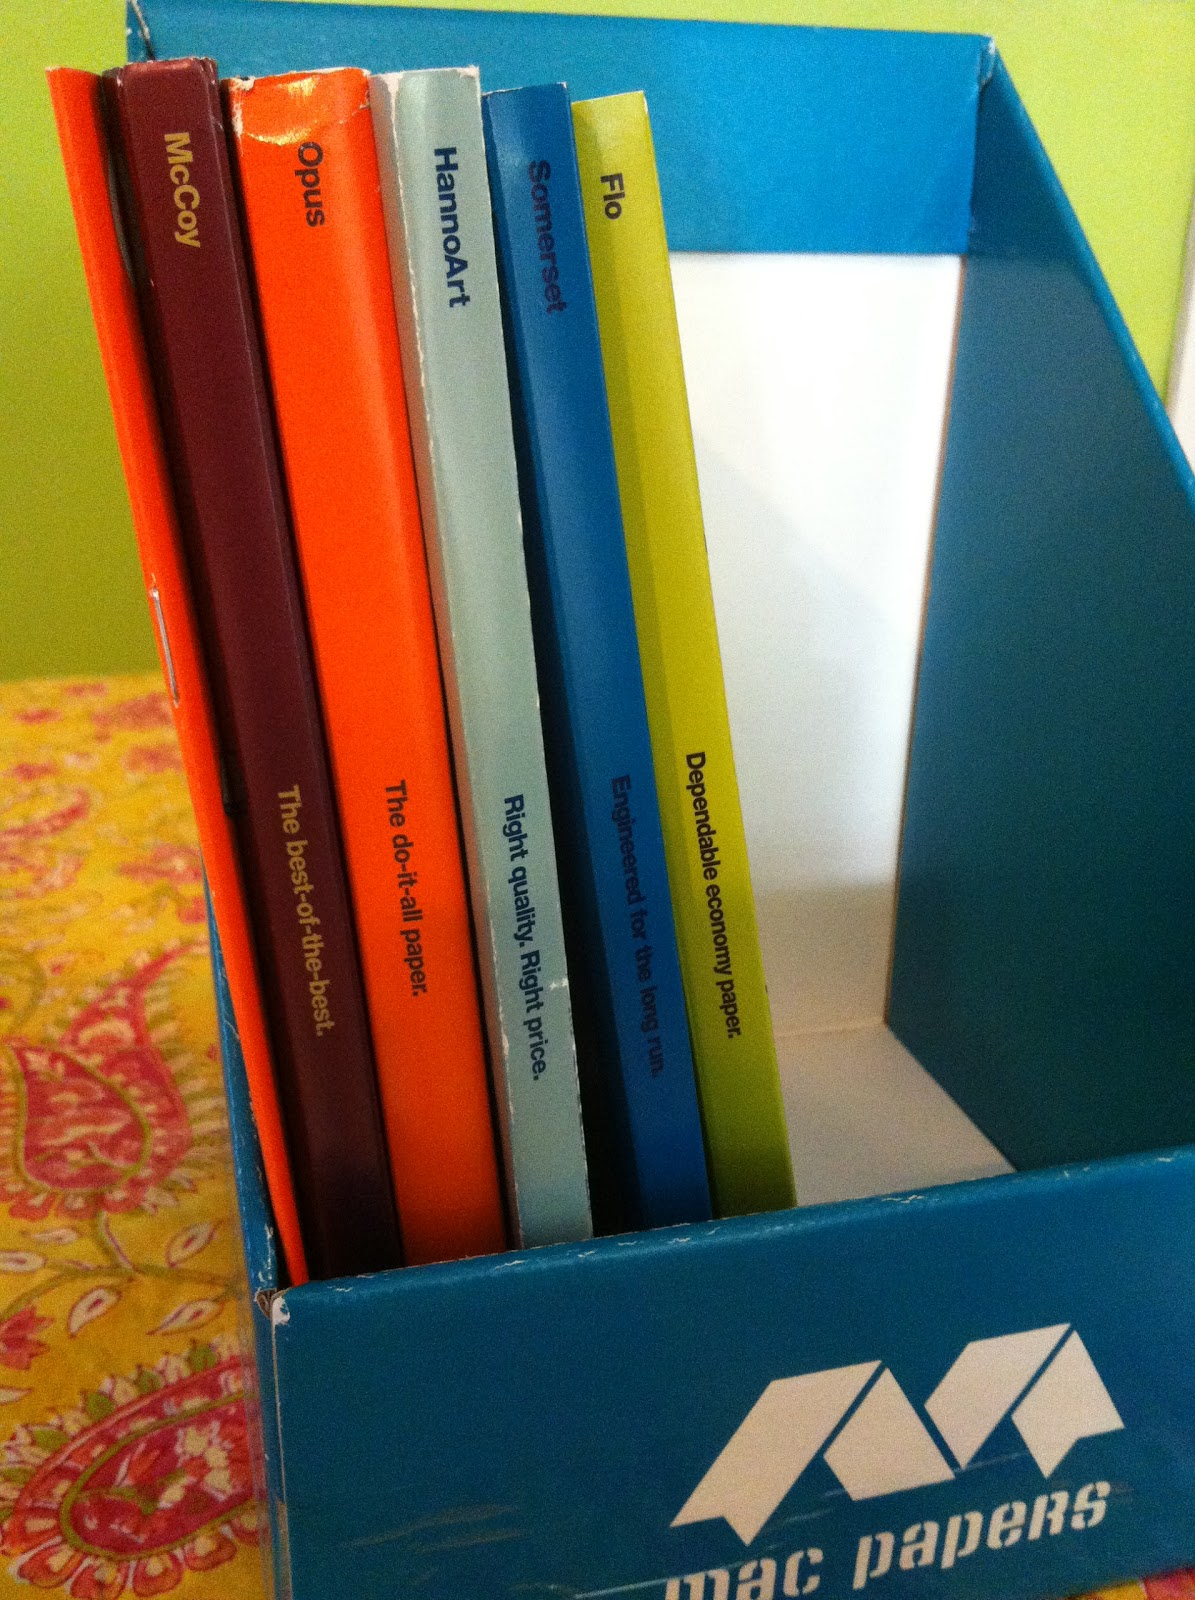 the sWATCH Cabinet: Mac Papers has Sappi's current swatch books